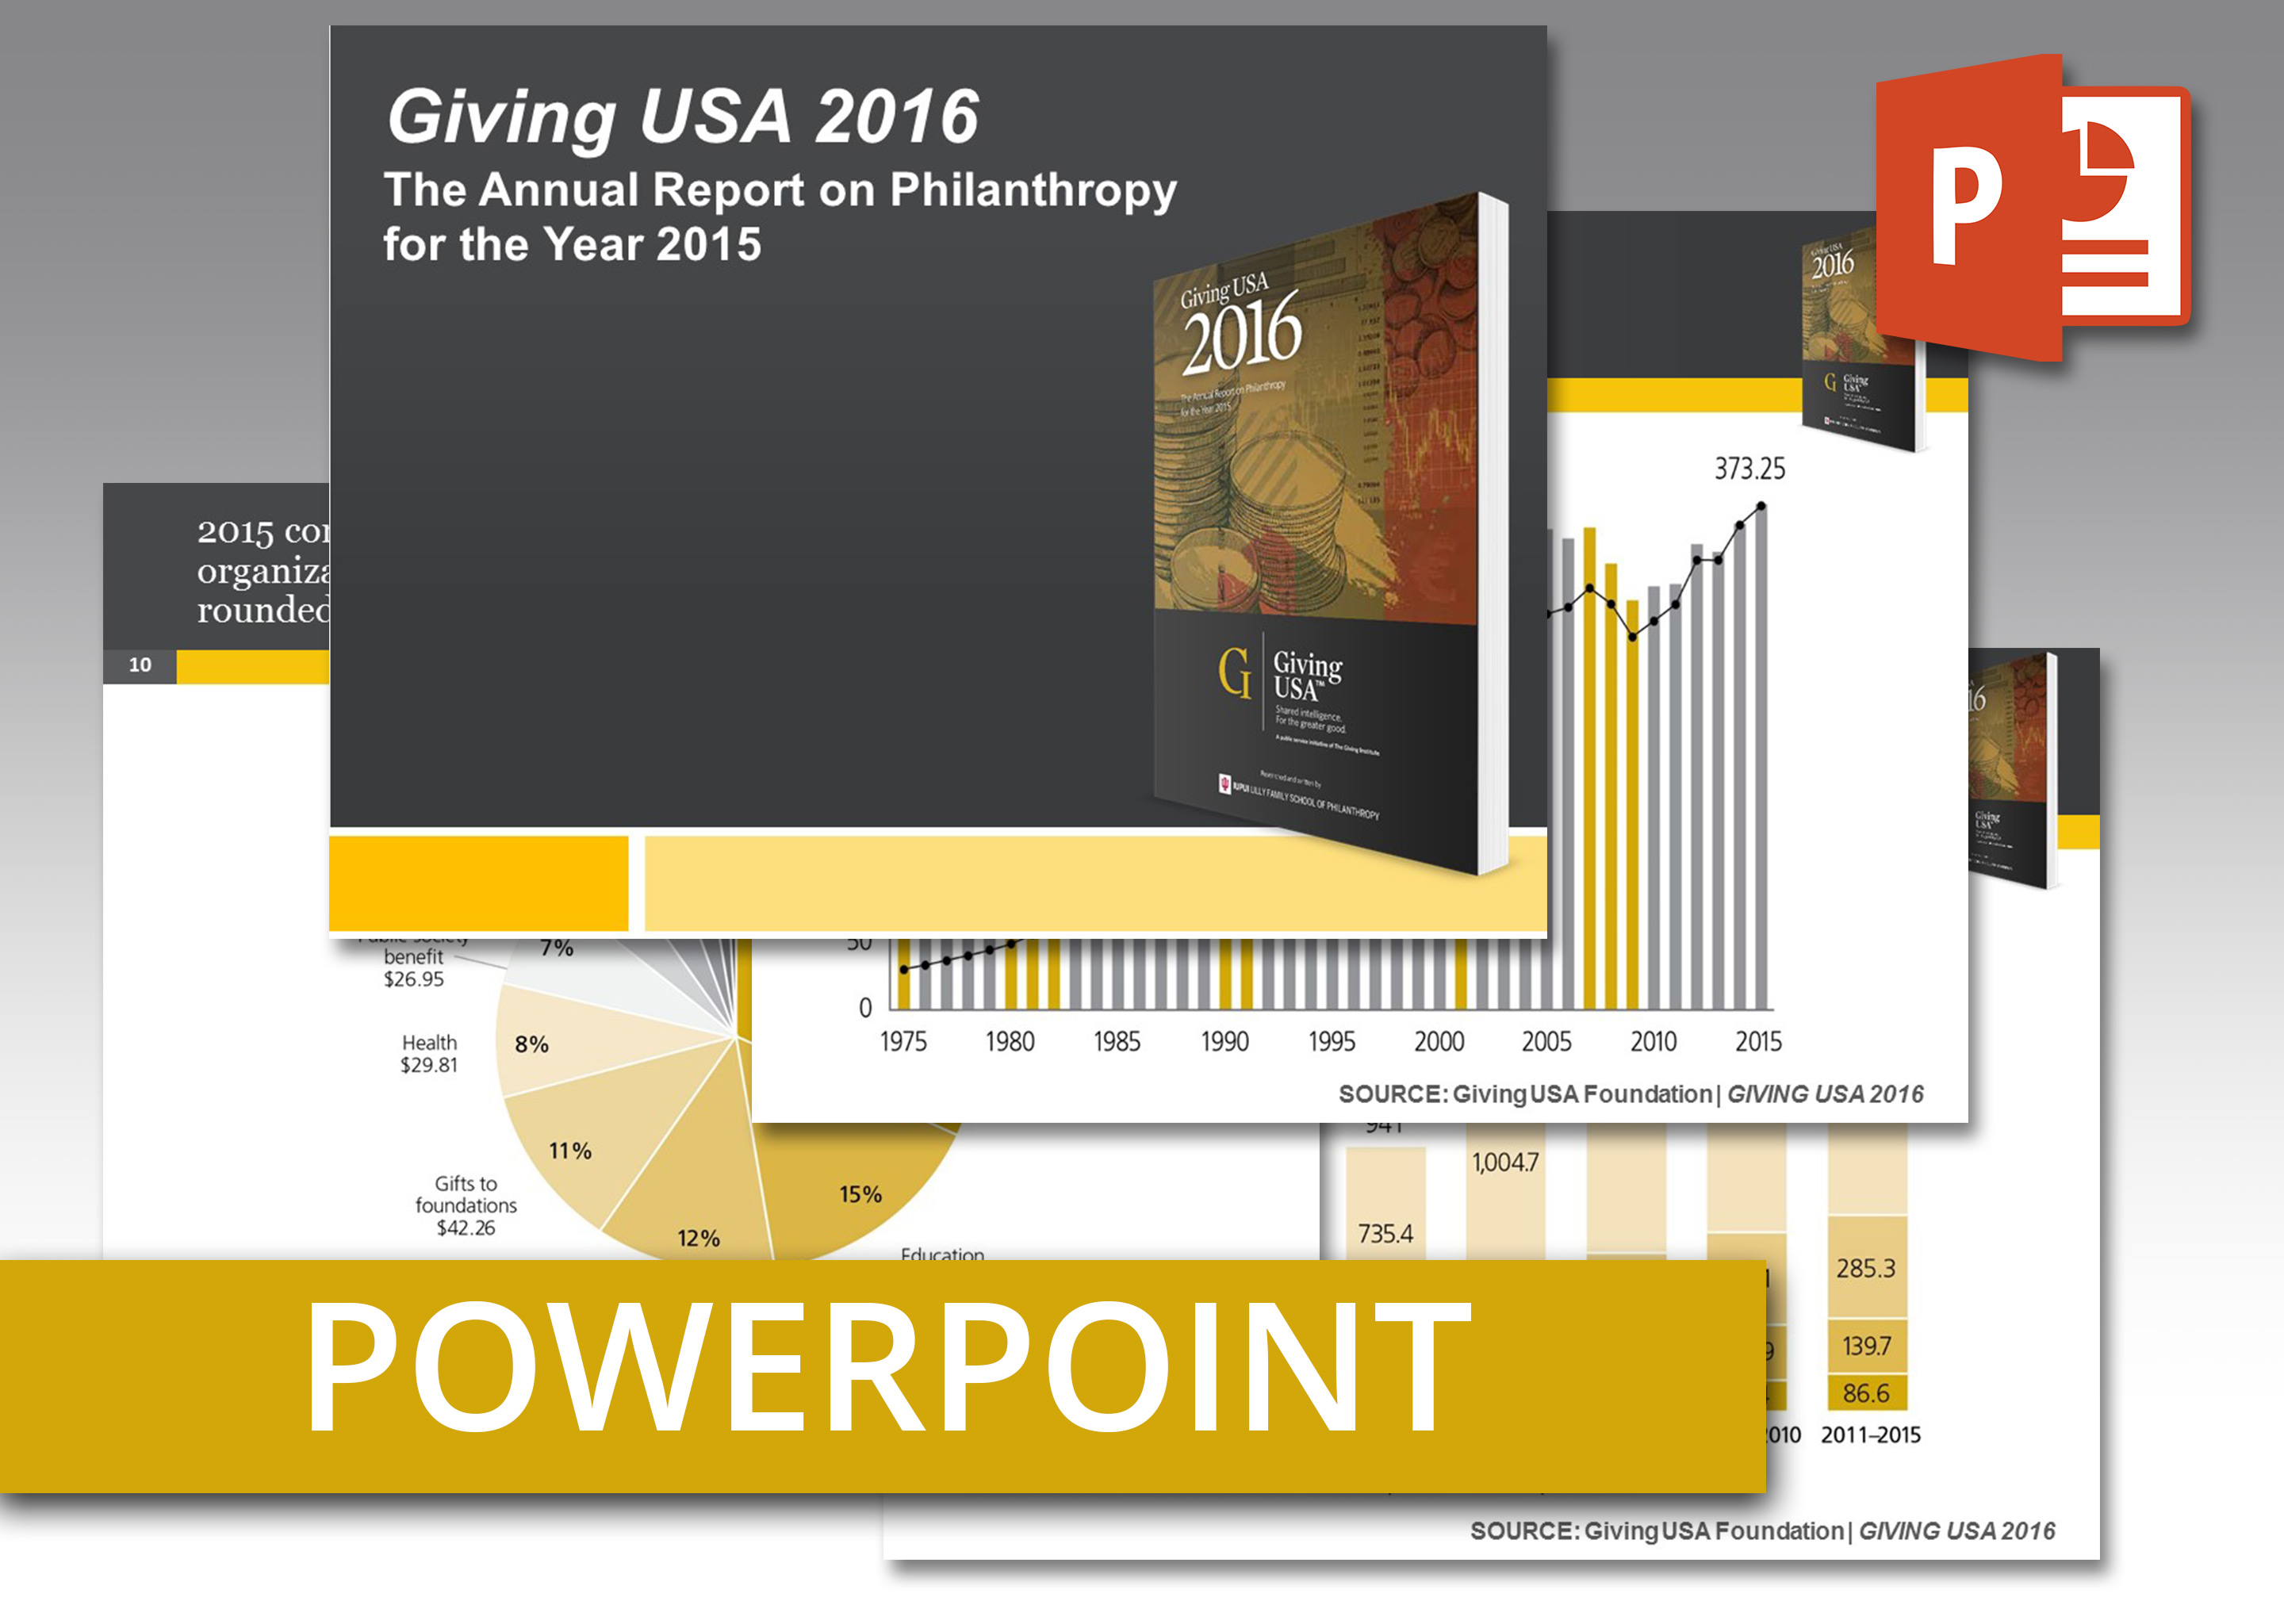 Coolmathgamesus  Sweet Giving Usa  Powerpoint An Easytouse Presentation Of Report  With Outstanding Giving Usa  Powerpoint An Easytouse Presentation Of Report Findings Including Talking Points With Cute Download Powerpoint Backgrounds Also Powerpoint Special Characters In Addition Meteorology Powerpoint And Procrastination Powerpoint As Well As Hieroglyphics Powerpoint Additionally Powerpoint On Probability From Givingusaorg With Coolmathgamesus  Outstanding Giving Usa  Powerpoint An Easytouse Presentation Of Report  With Cute Giving Usa  Powerpoint An Easytouse Presentation Of Report Findings Including Talking Points And Sweet Download Powerpoint Backgrounds Also Powerpoint Special Characters In Addition Meteorology Powerpoint From Givingusaorg